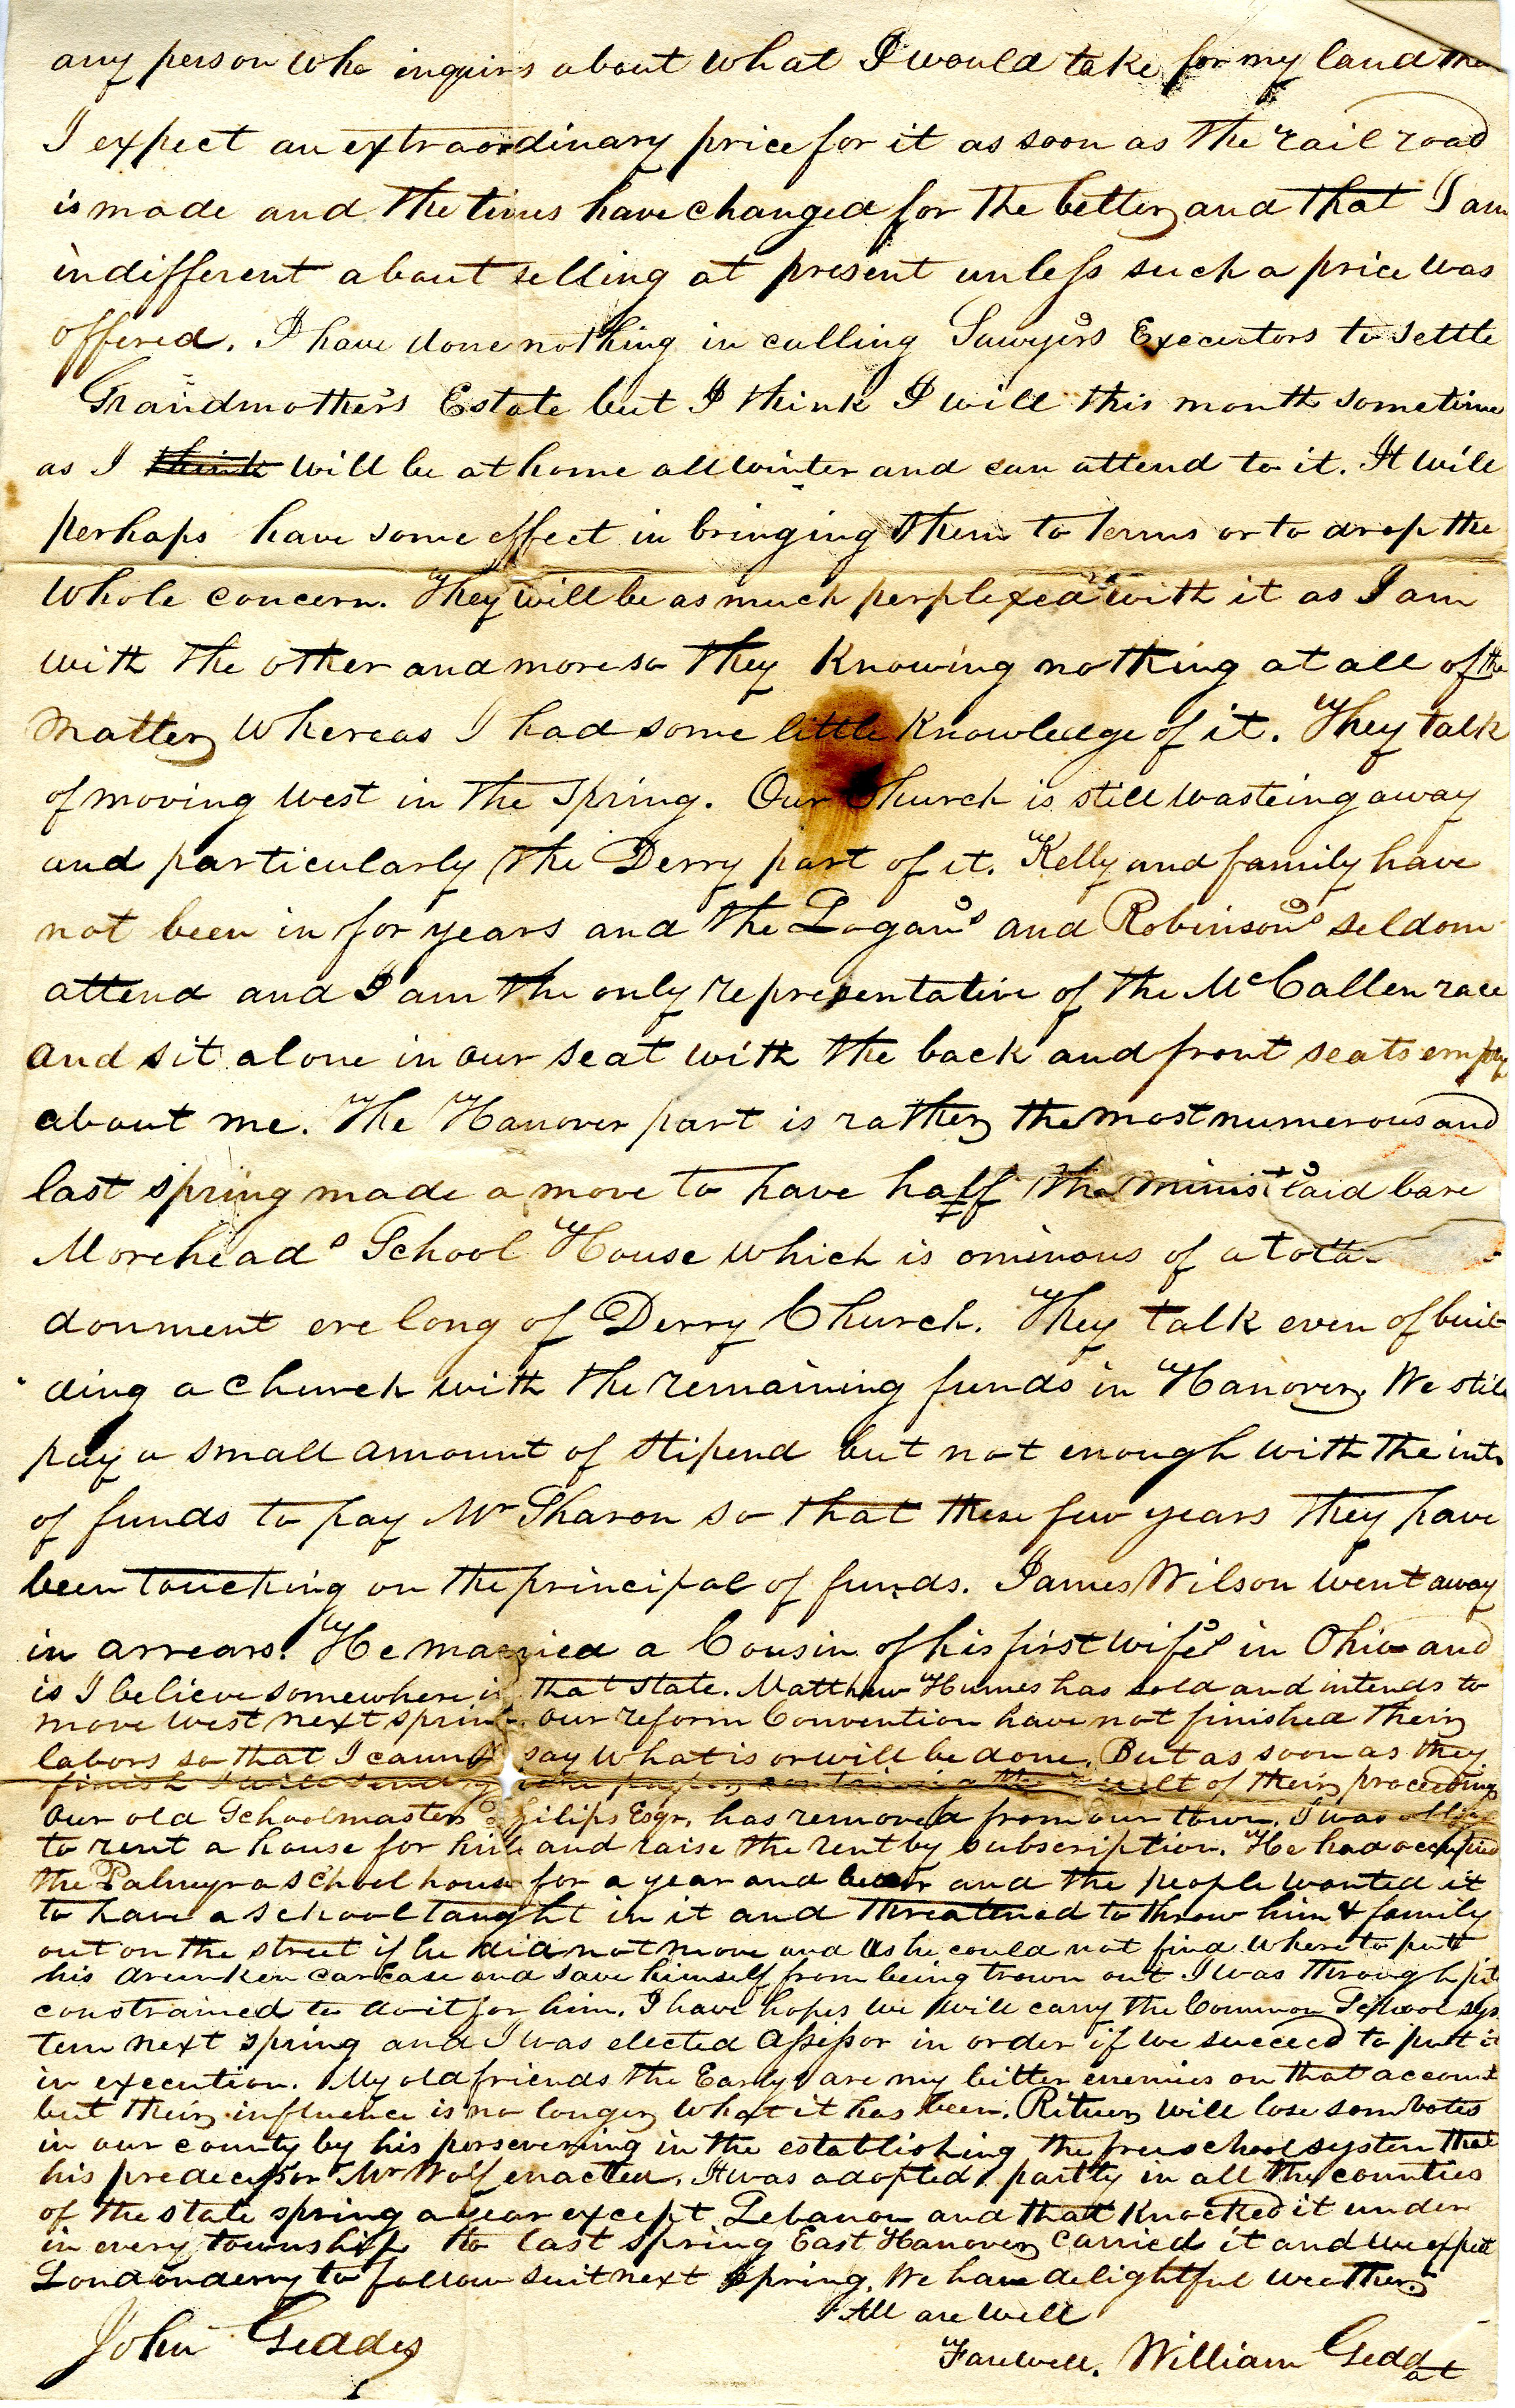 Letter From William Geddes to John Geddes, November 9, 1837 image